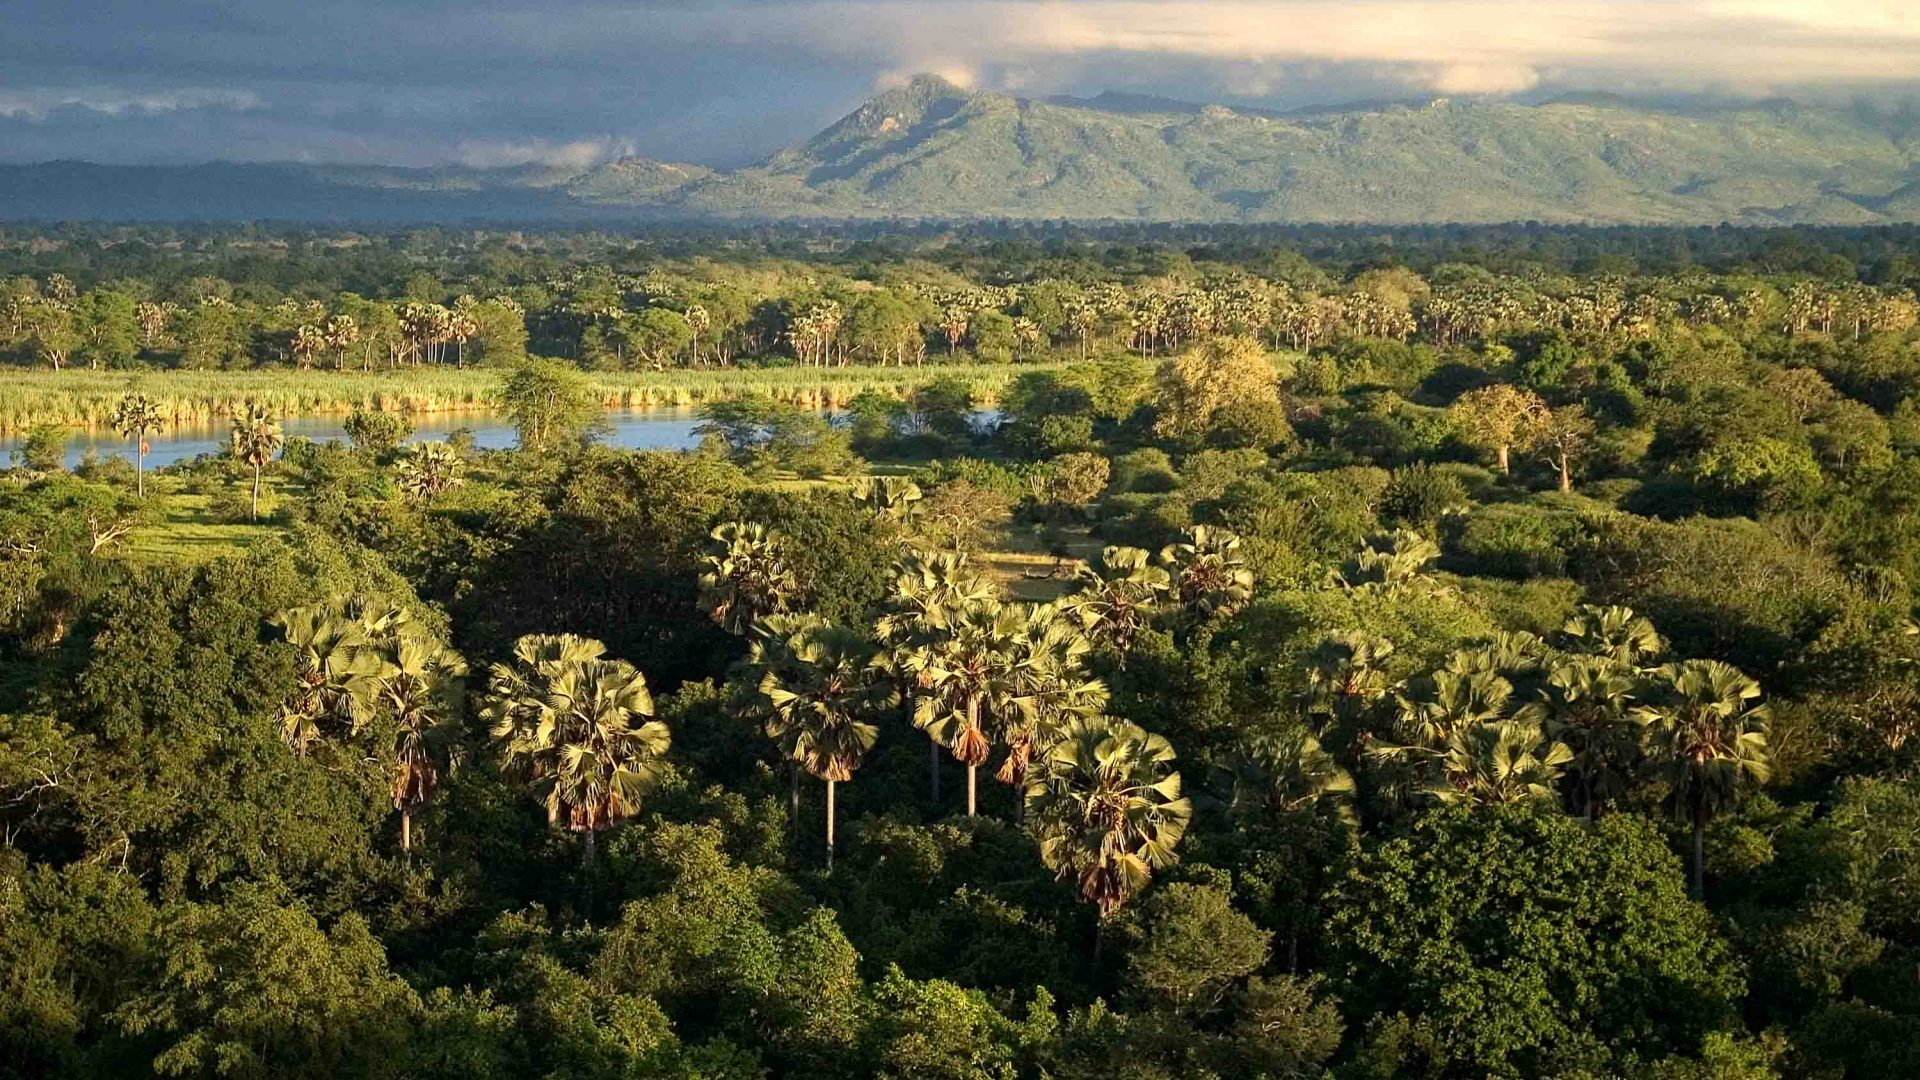 The vast green landscape of Liwonde National Park, Malawi.